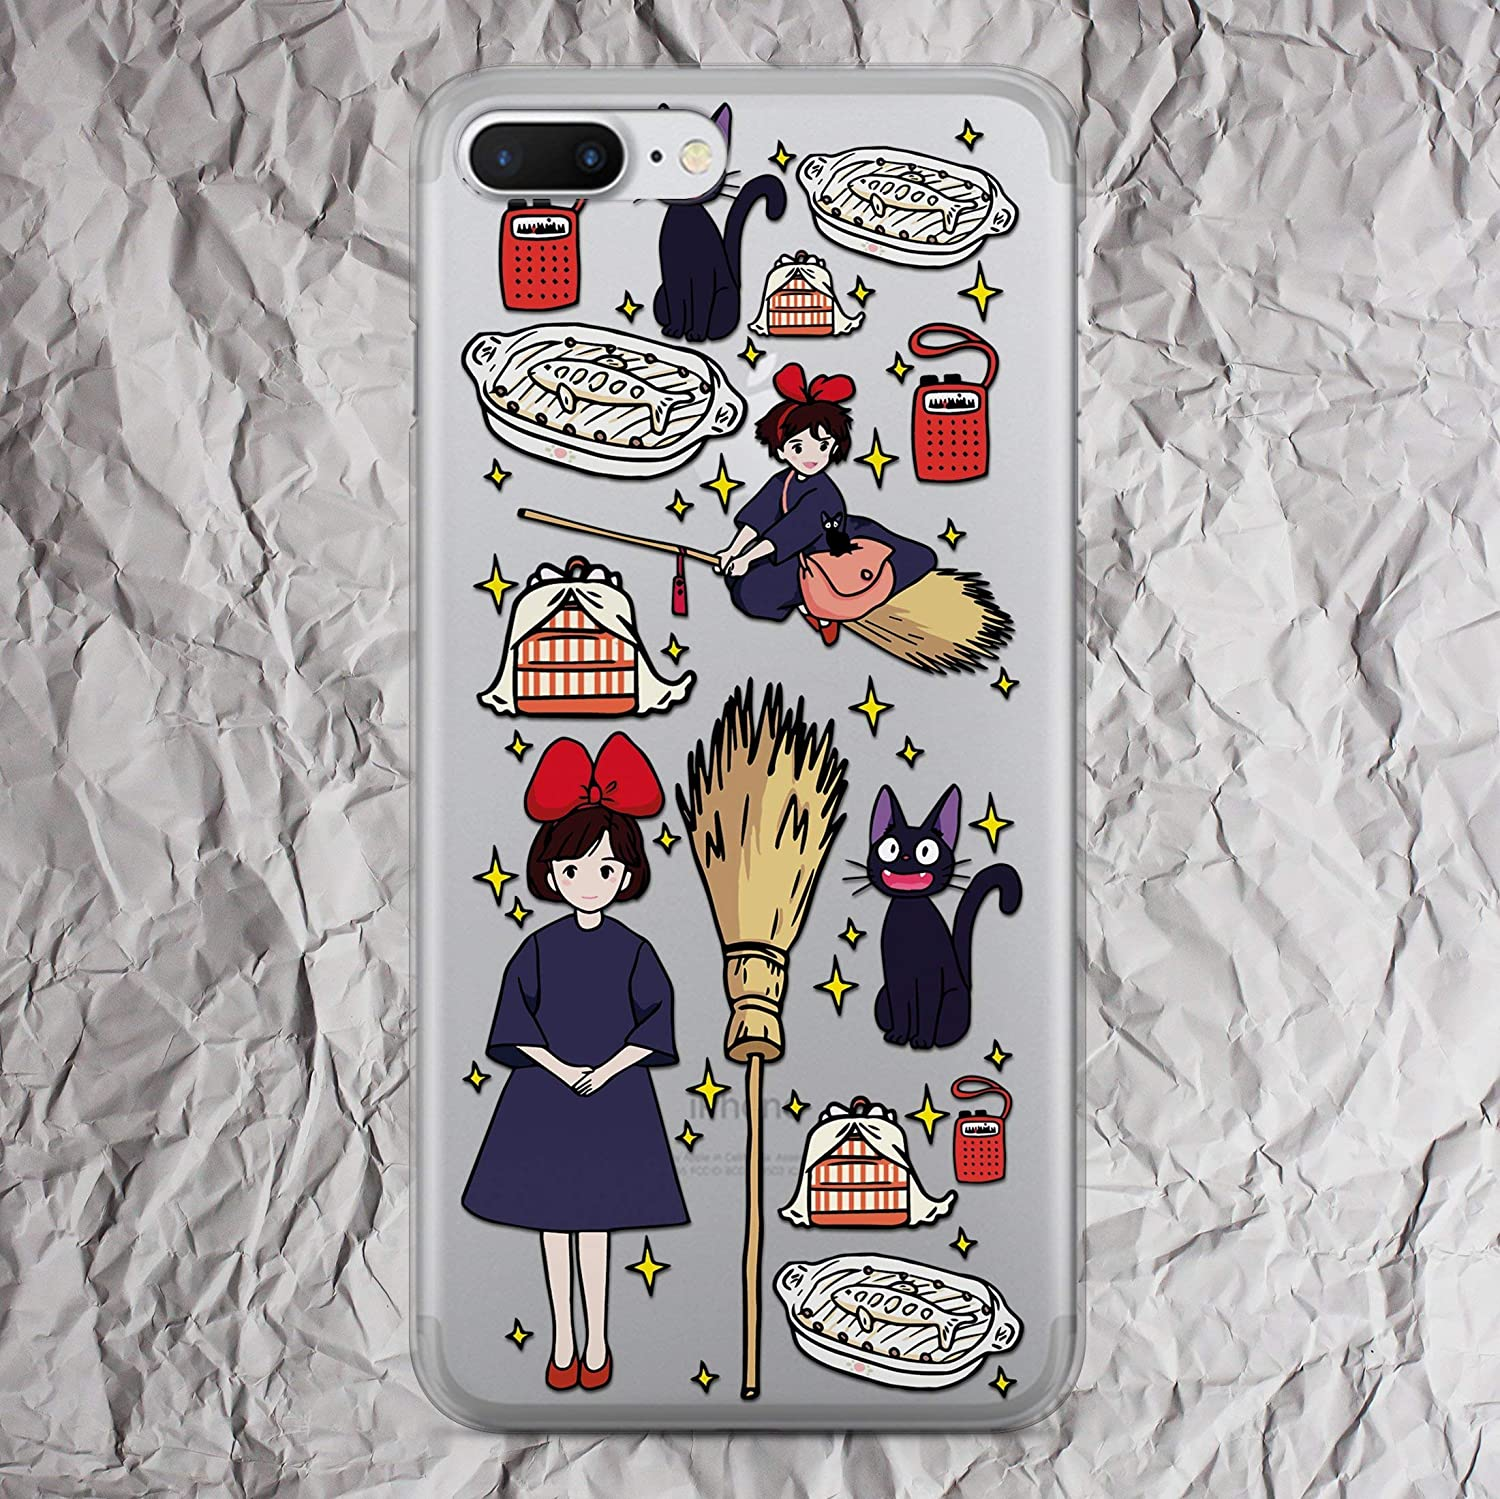 Kiki's Delivery Service Black Jiji Cat Phone Case for iPhone 7 8 6 6s plus X Xs Max Xr 5 5s se 5se 4 4s Inspired by Studio Ghibli Collection Accessories fandom Gifts